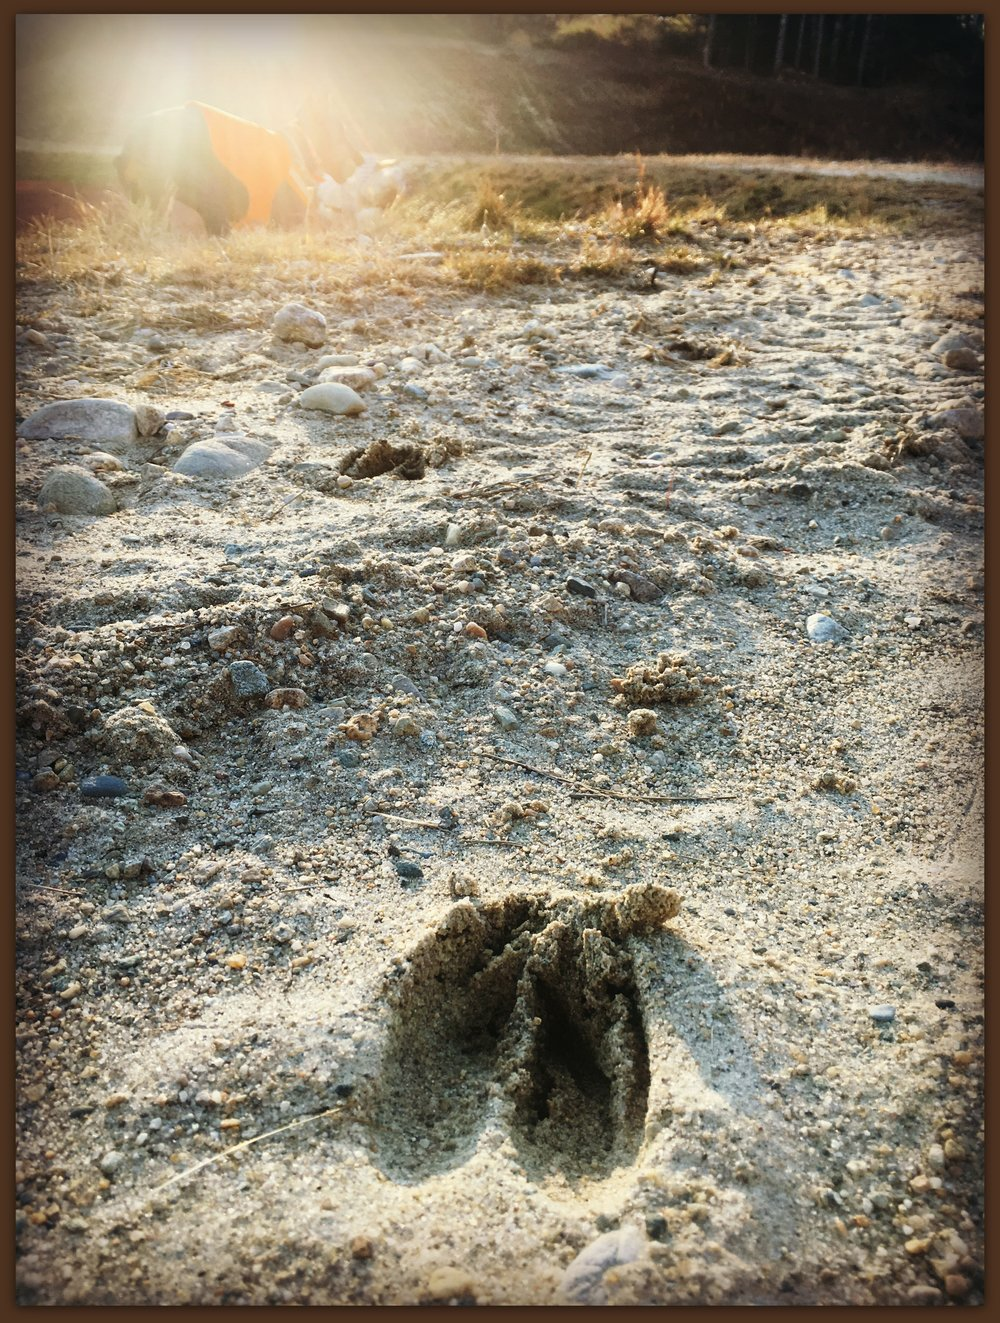 Deer prints from this morning's run, Zoë romping in the background.